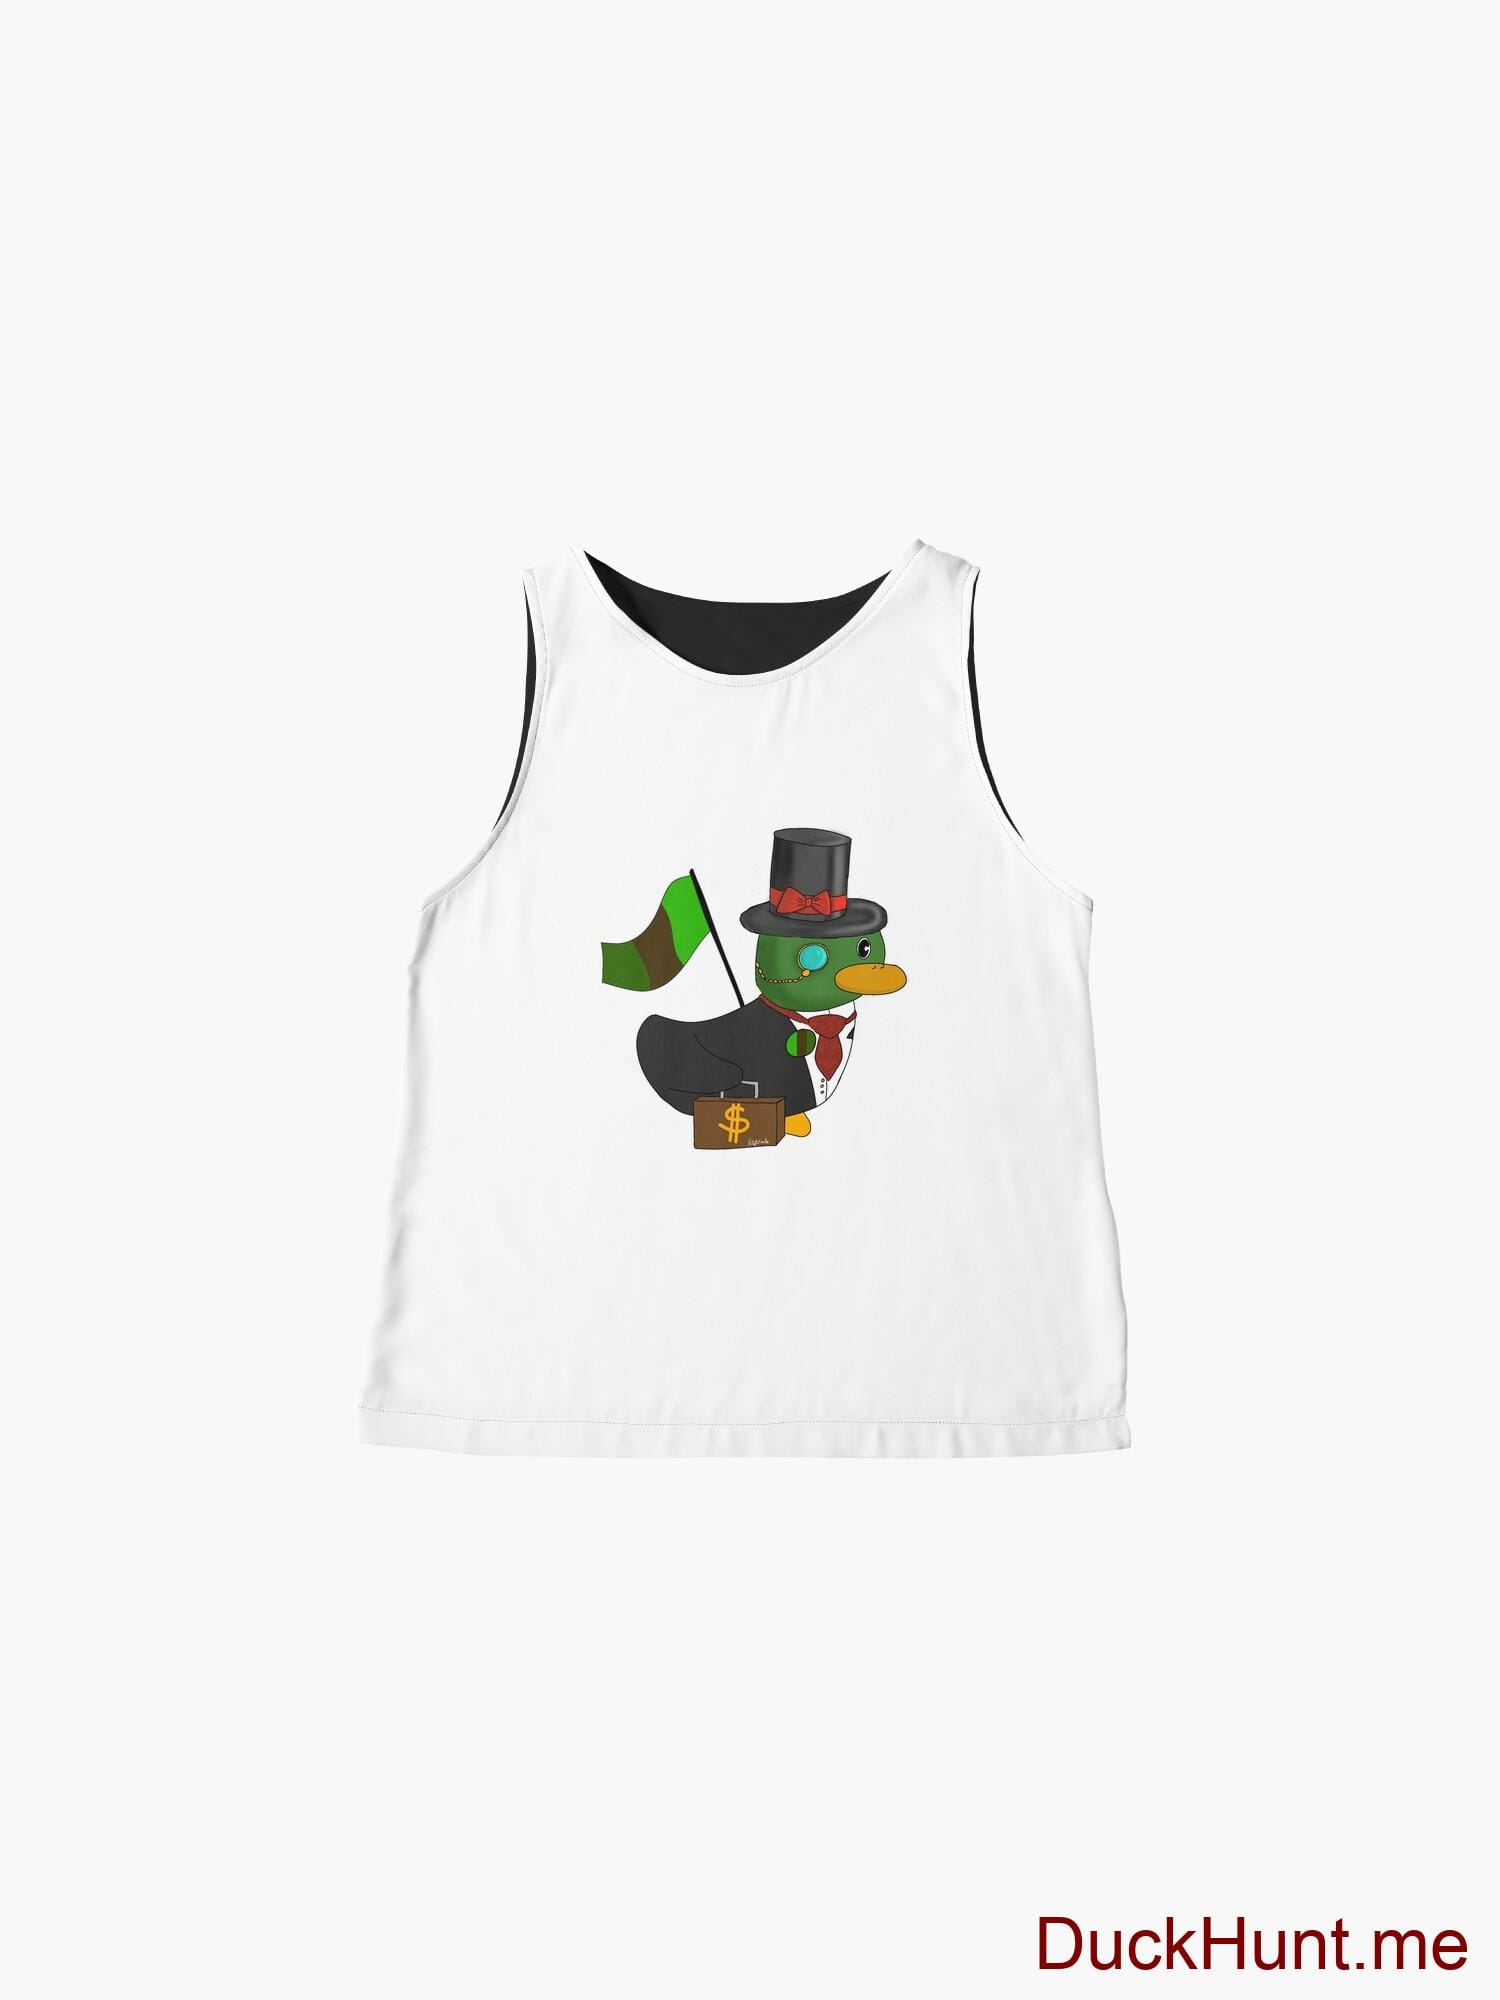 Golden Duck Black Sleeveless Top alternative image 4